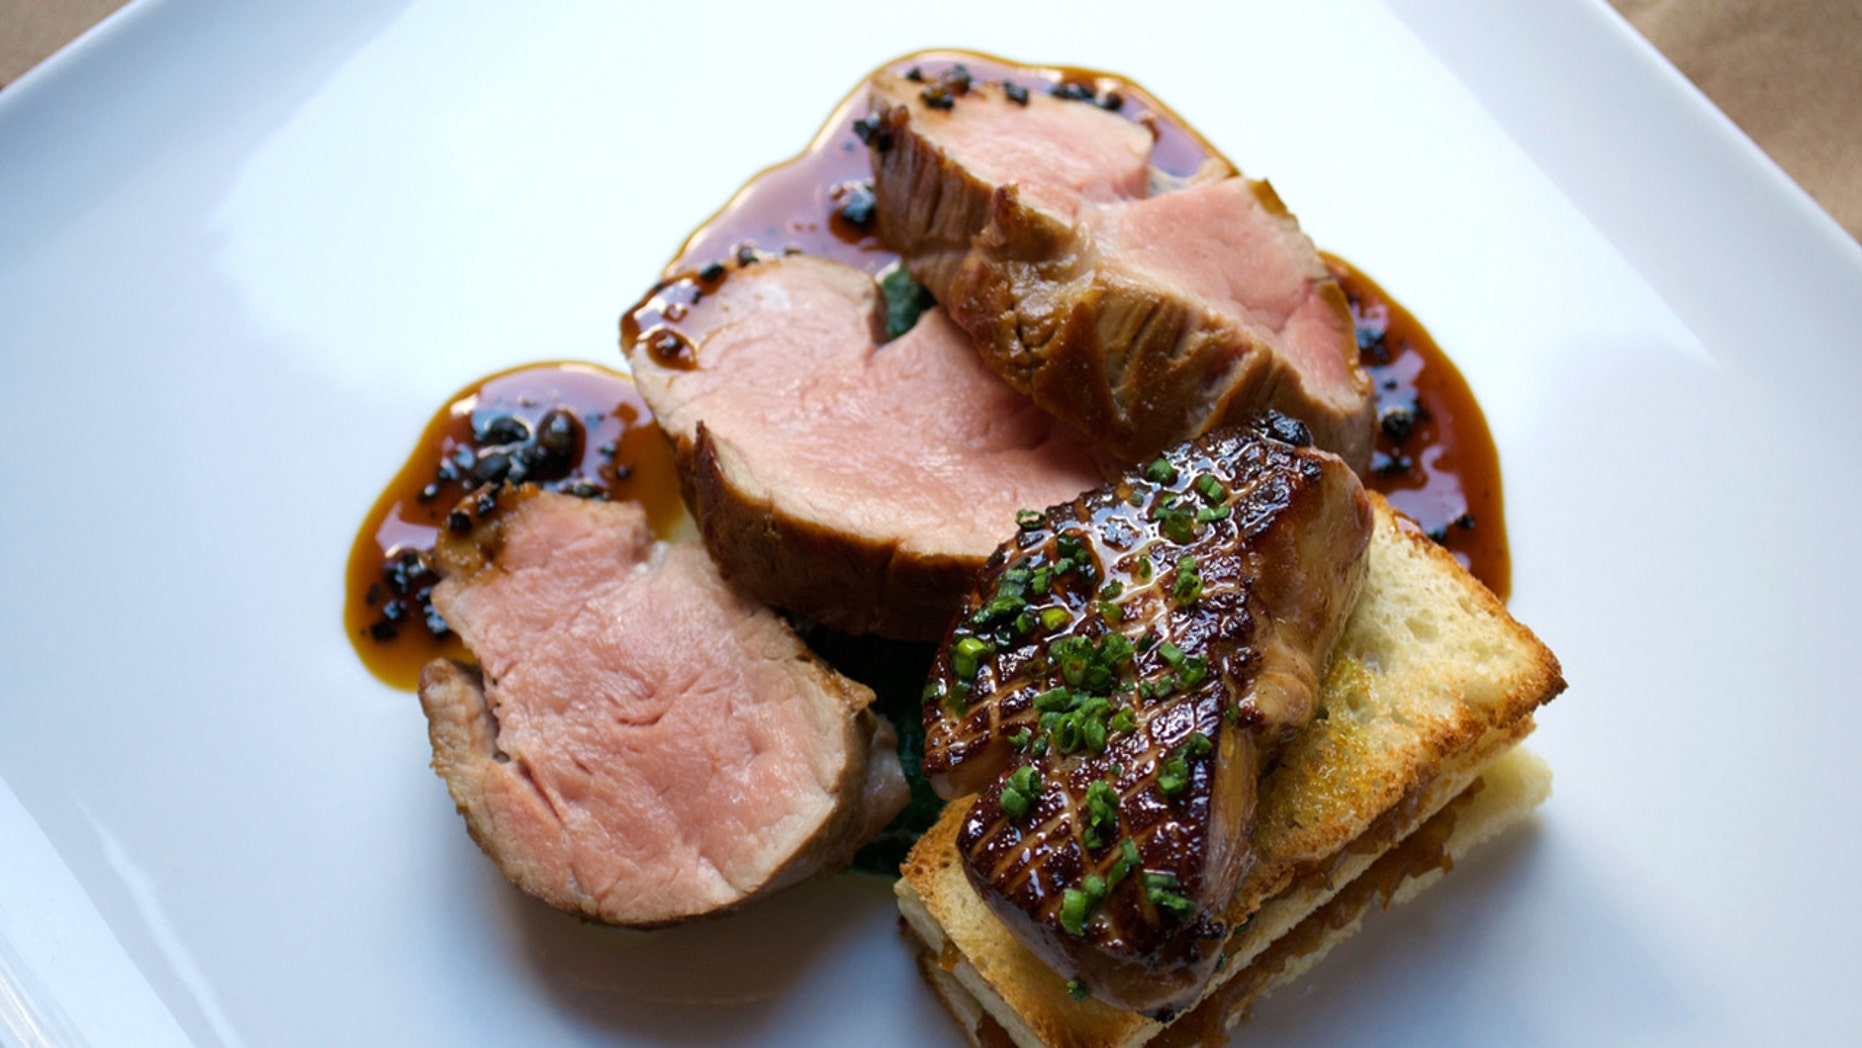 The veal tenderloin served with foie gras, a caramelized onion tartine, and black truffle jus at Altamarea's Vaucluse.